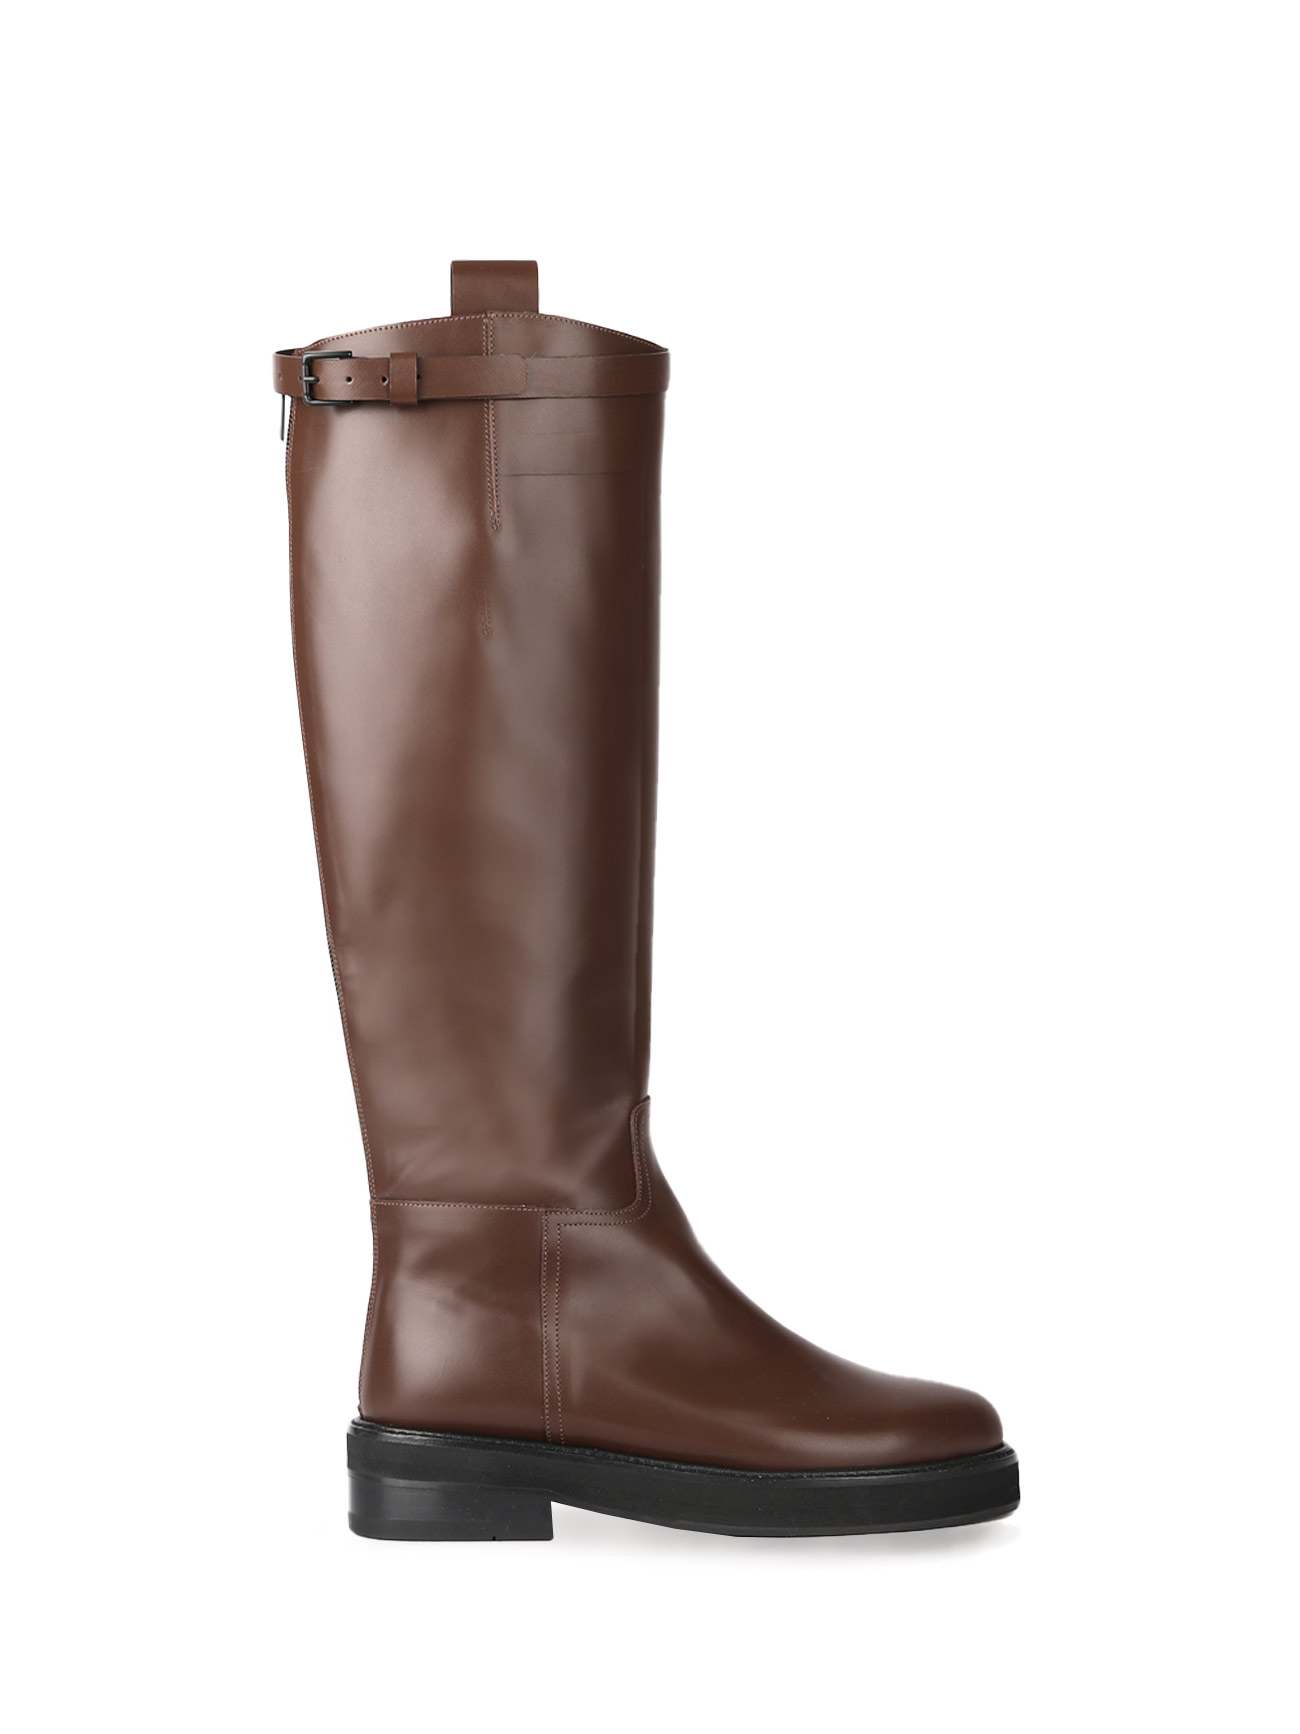 JOY BUCKLE-STRAP LEATHER BOOTS - CHOCO (4cm)